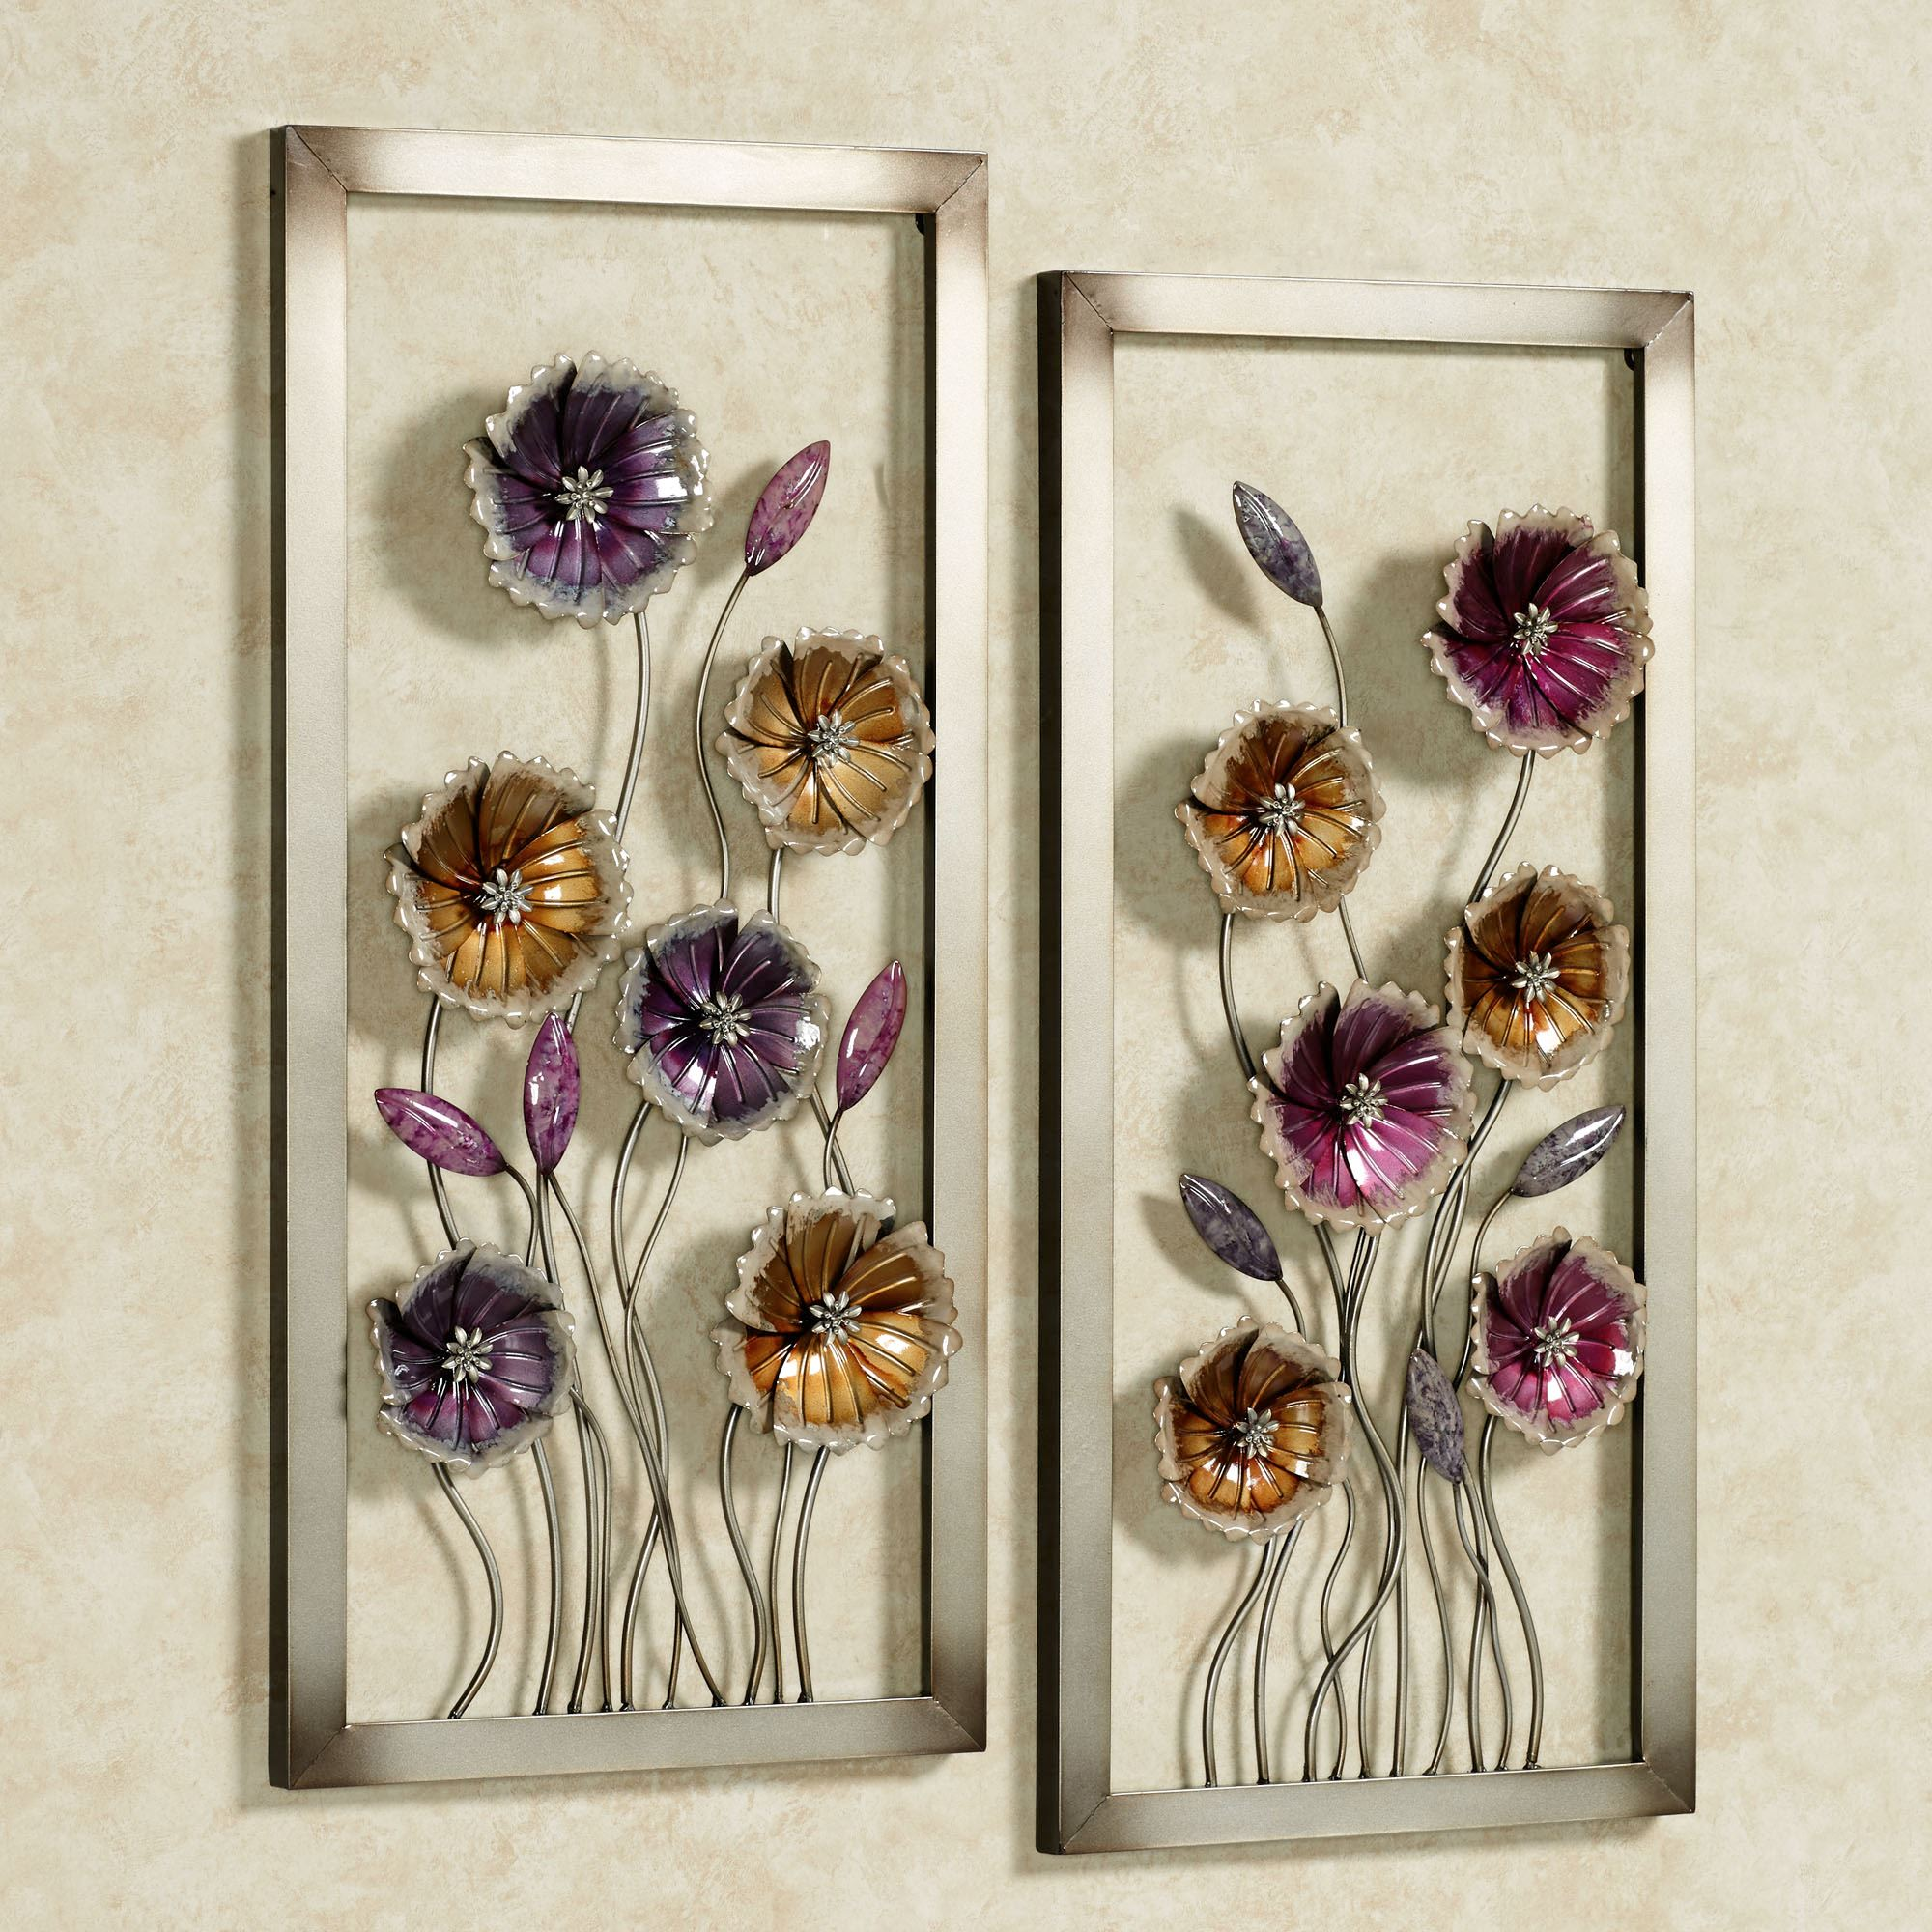 charming floral metal framed wall art set. Black Bedroom Furniture Sets. Home Design Ideas